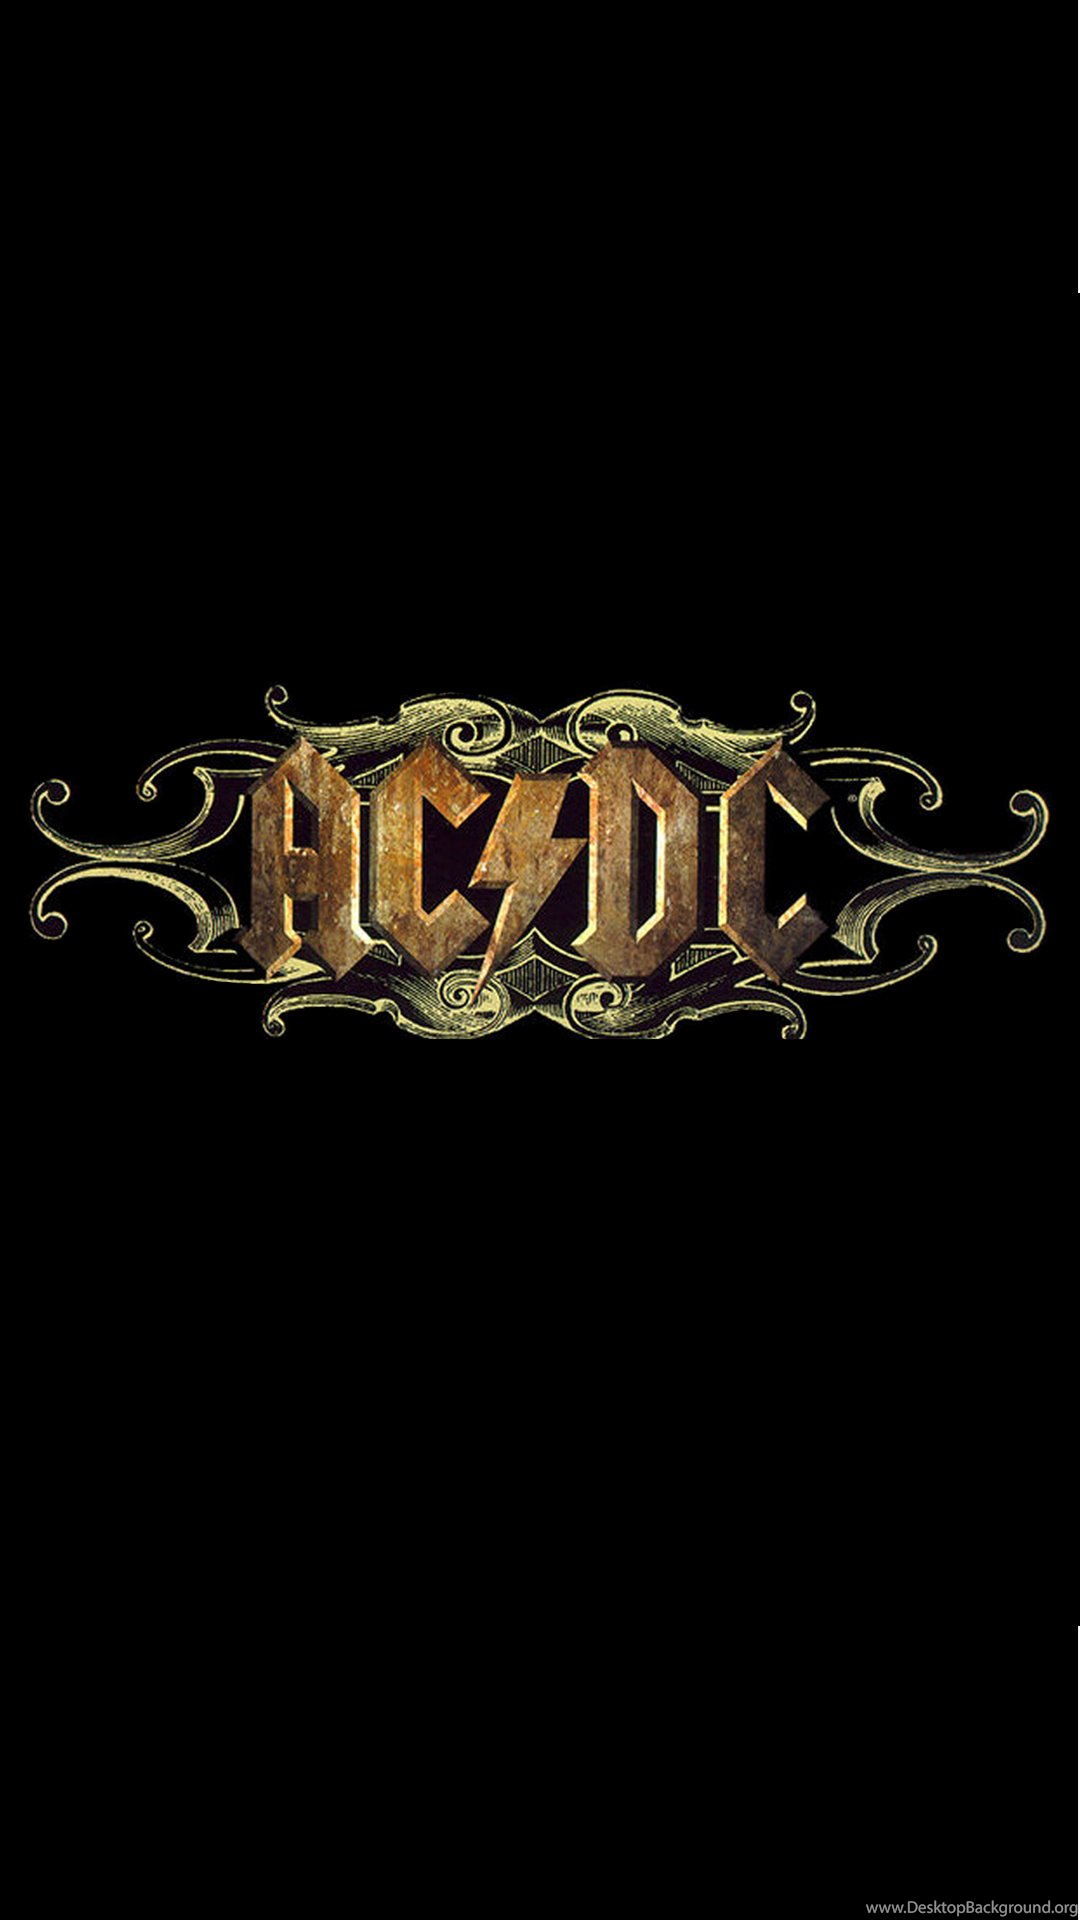 Acdc Rock Band Logo Iphone 6 Plus Hd Wallpapers Ipod Wallpapers